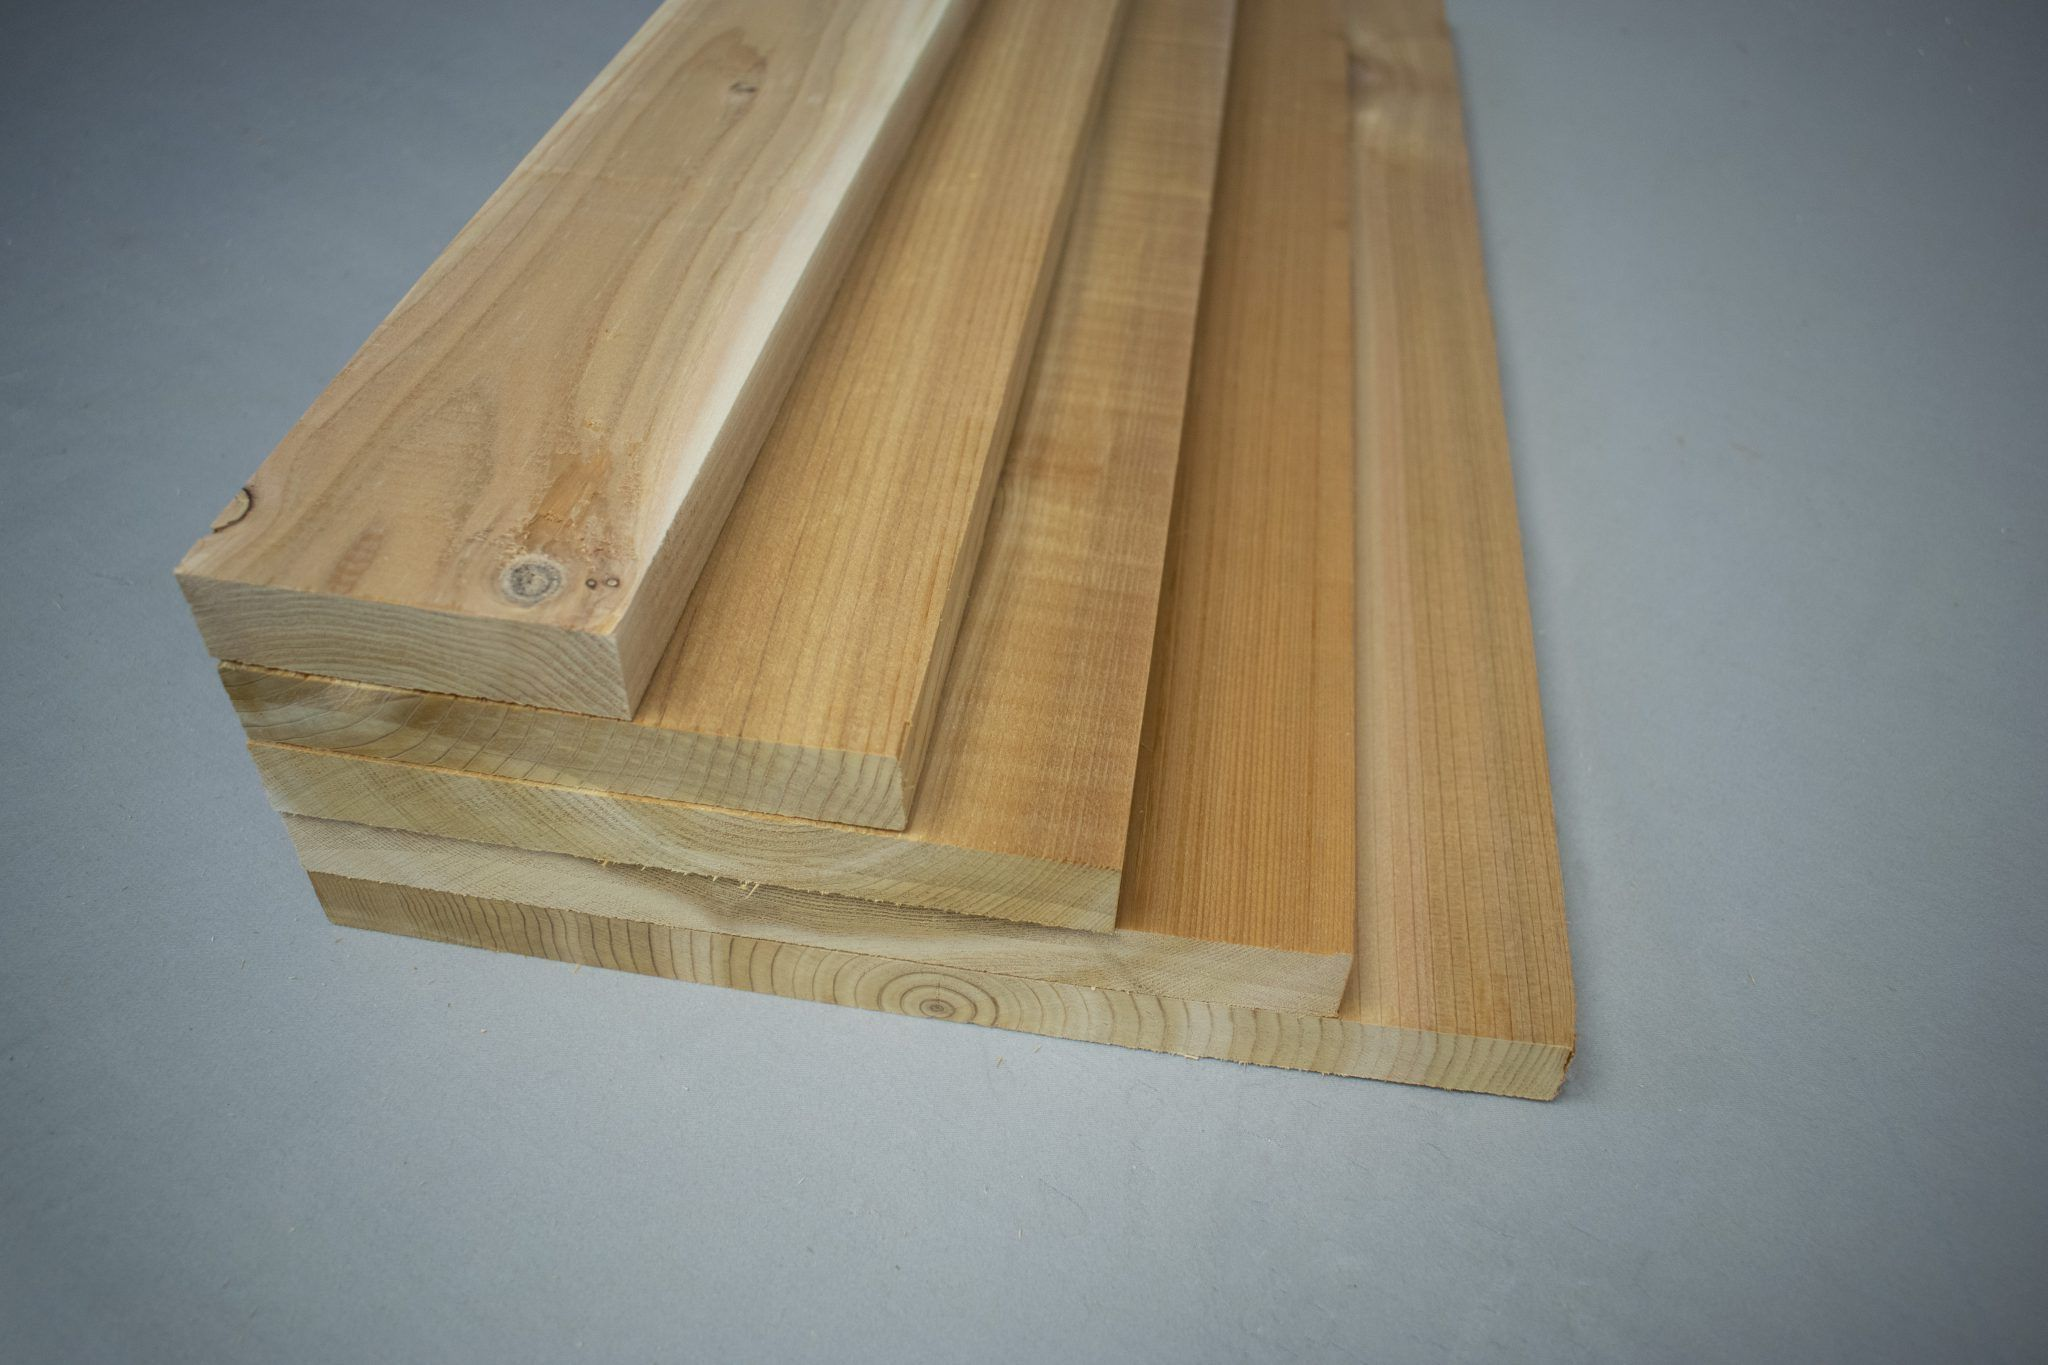 Western Red Cedar Trim Wood Siding Wood Siding Trim Wood